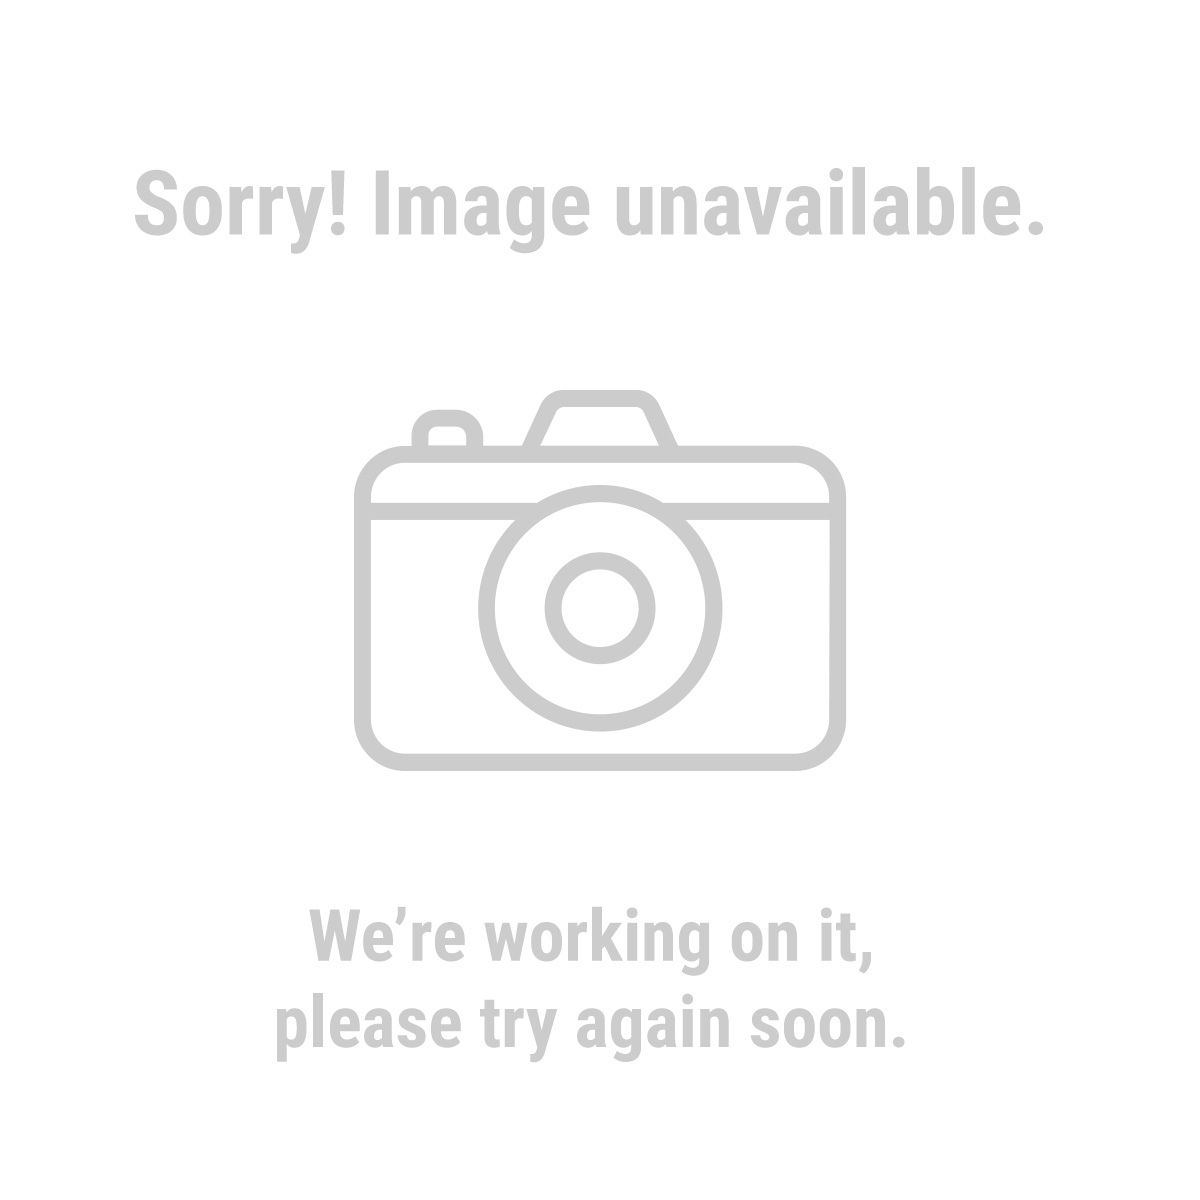 Pittsburgh® Motorcycle 95896 Low Profile Motorcycle Dolly